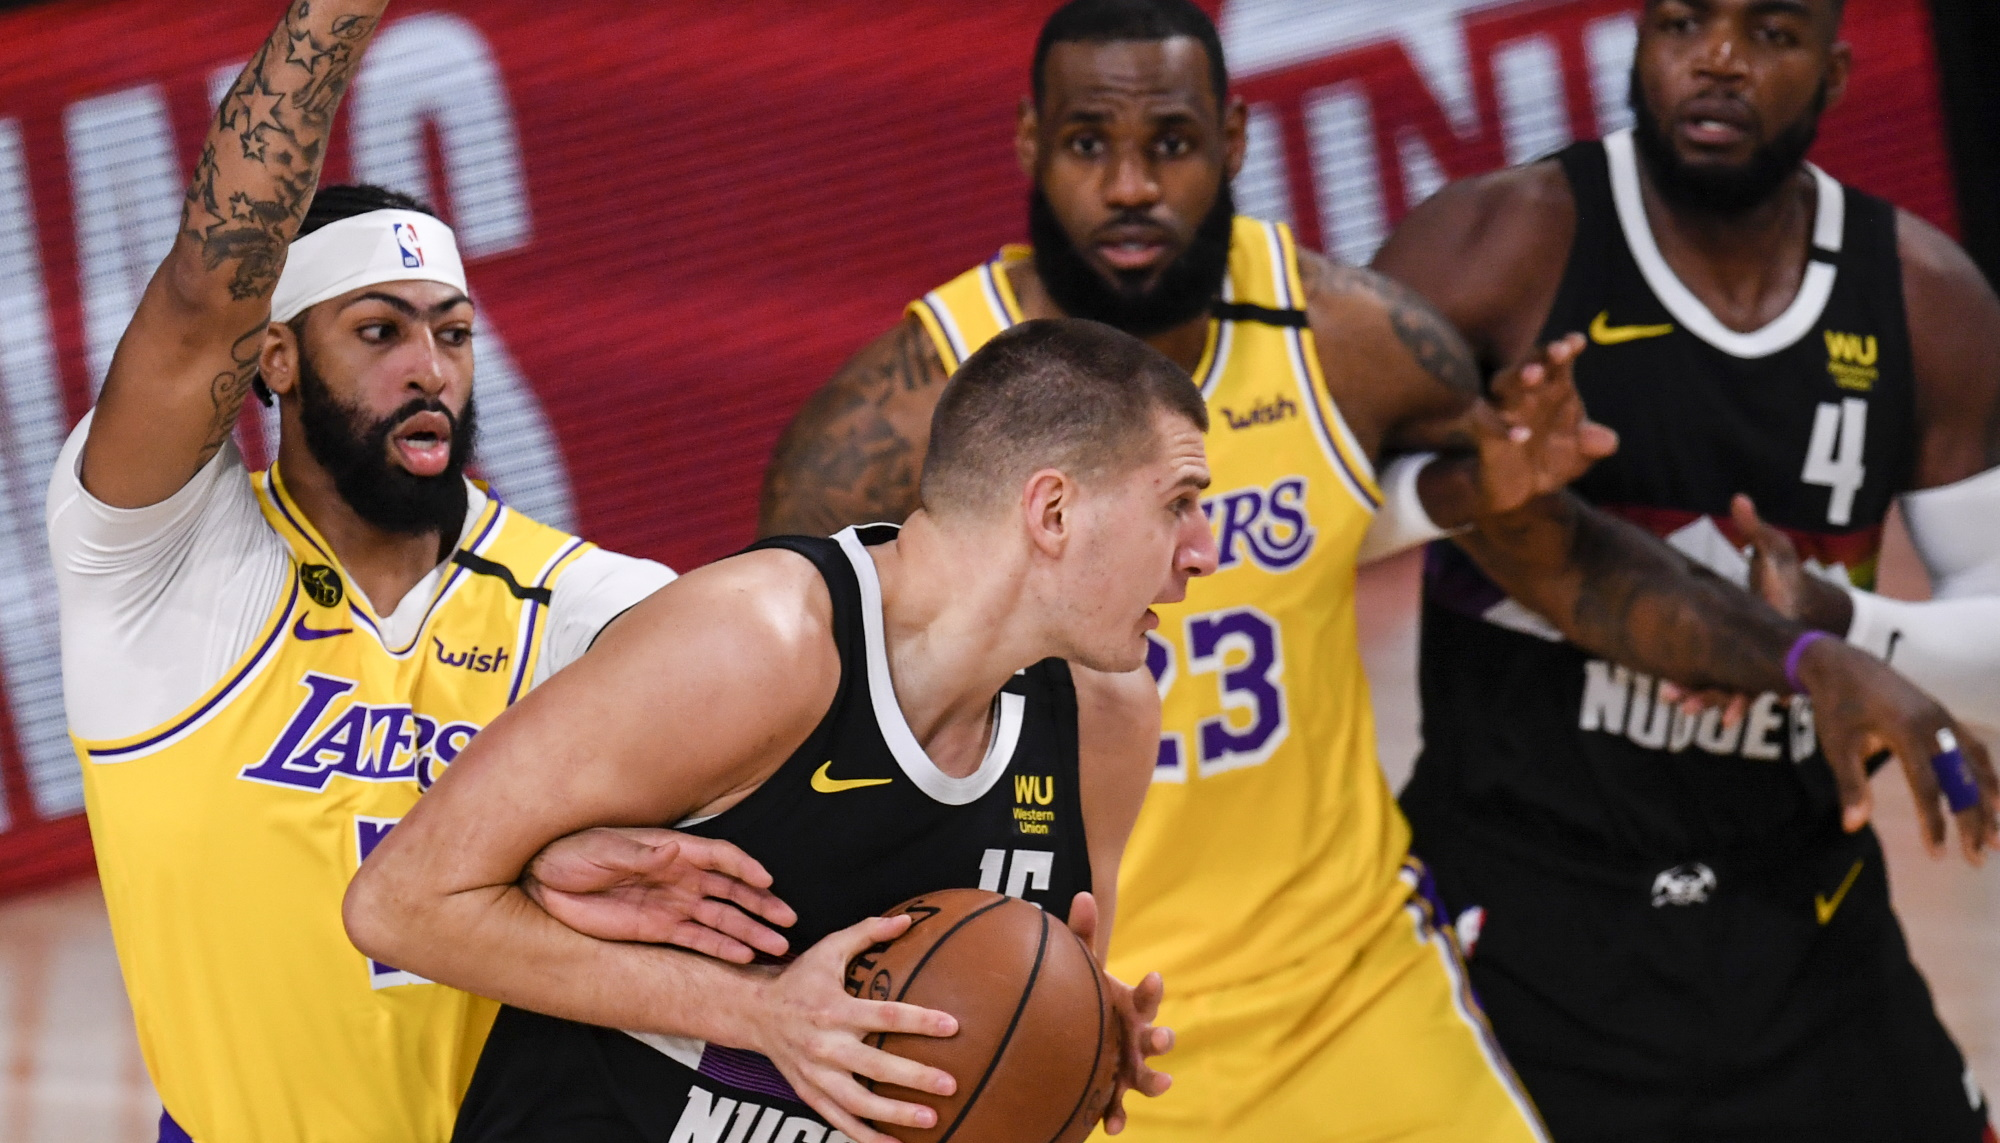 Lakers Vs Nuggets Live Stream How To Watch Game 5 Nba Playoffs Online From Anywhere Techradar